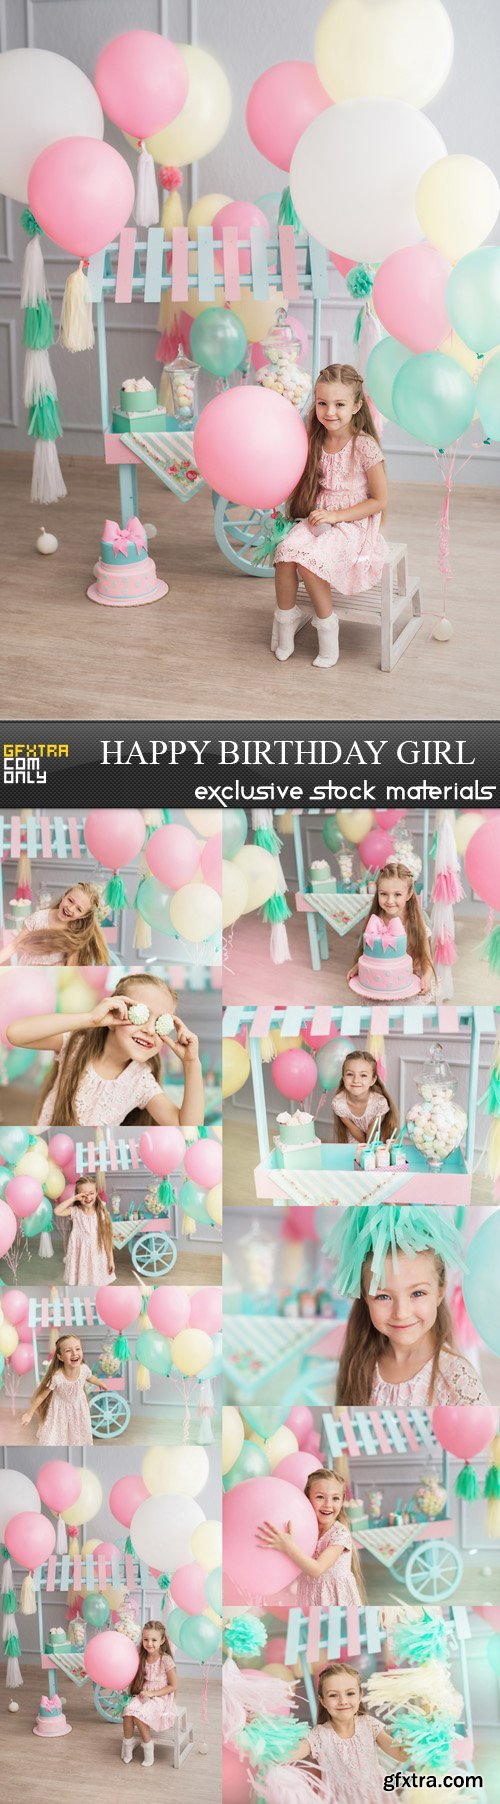 Happy Birthday Girl - 10 UHQ JPEG